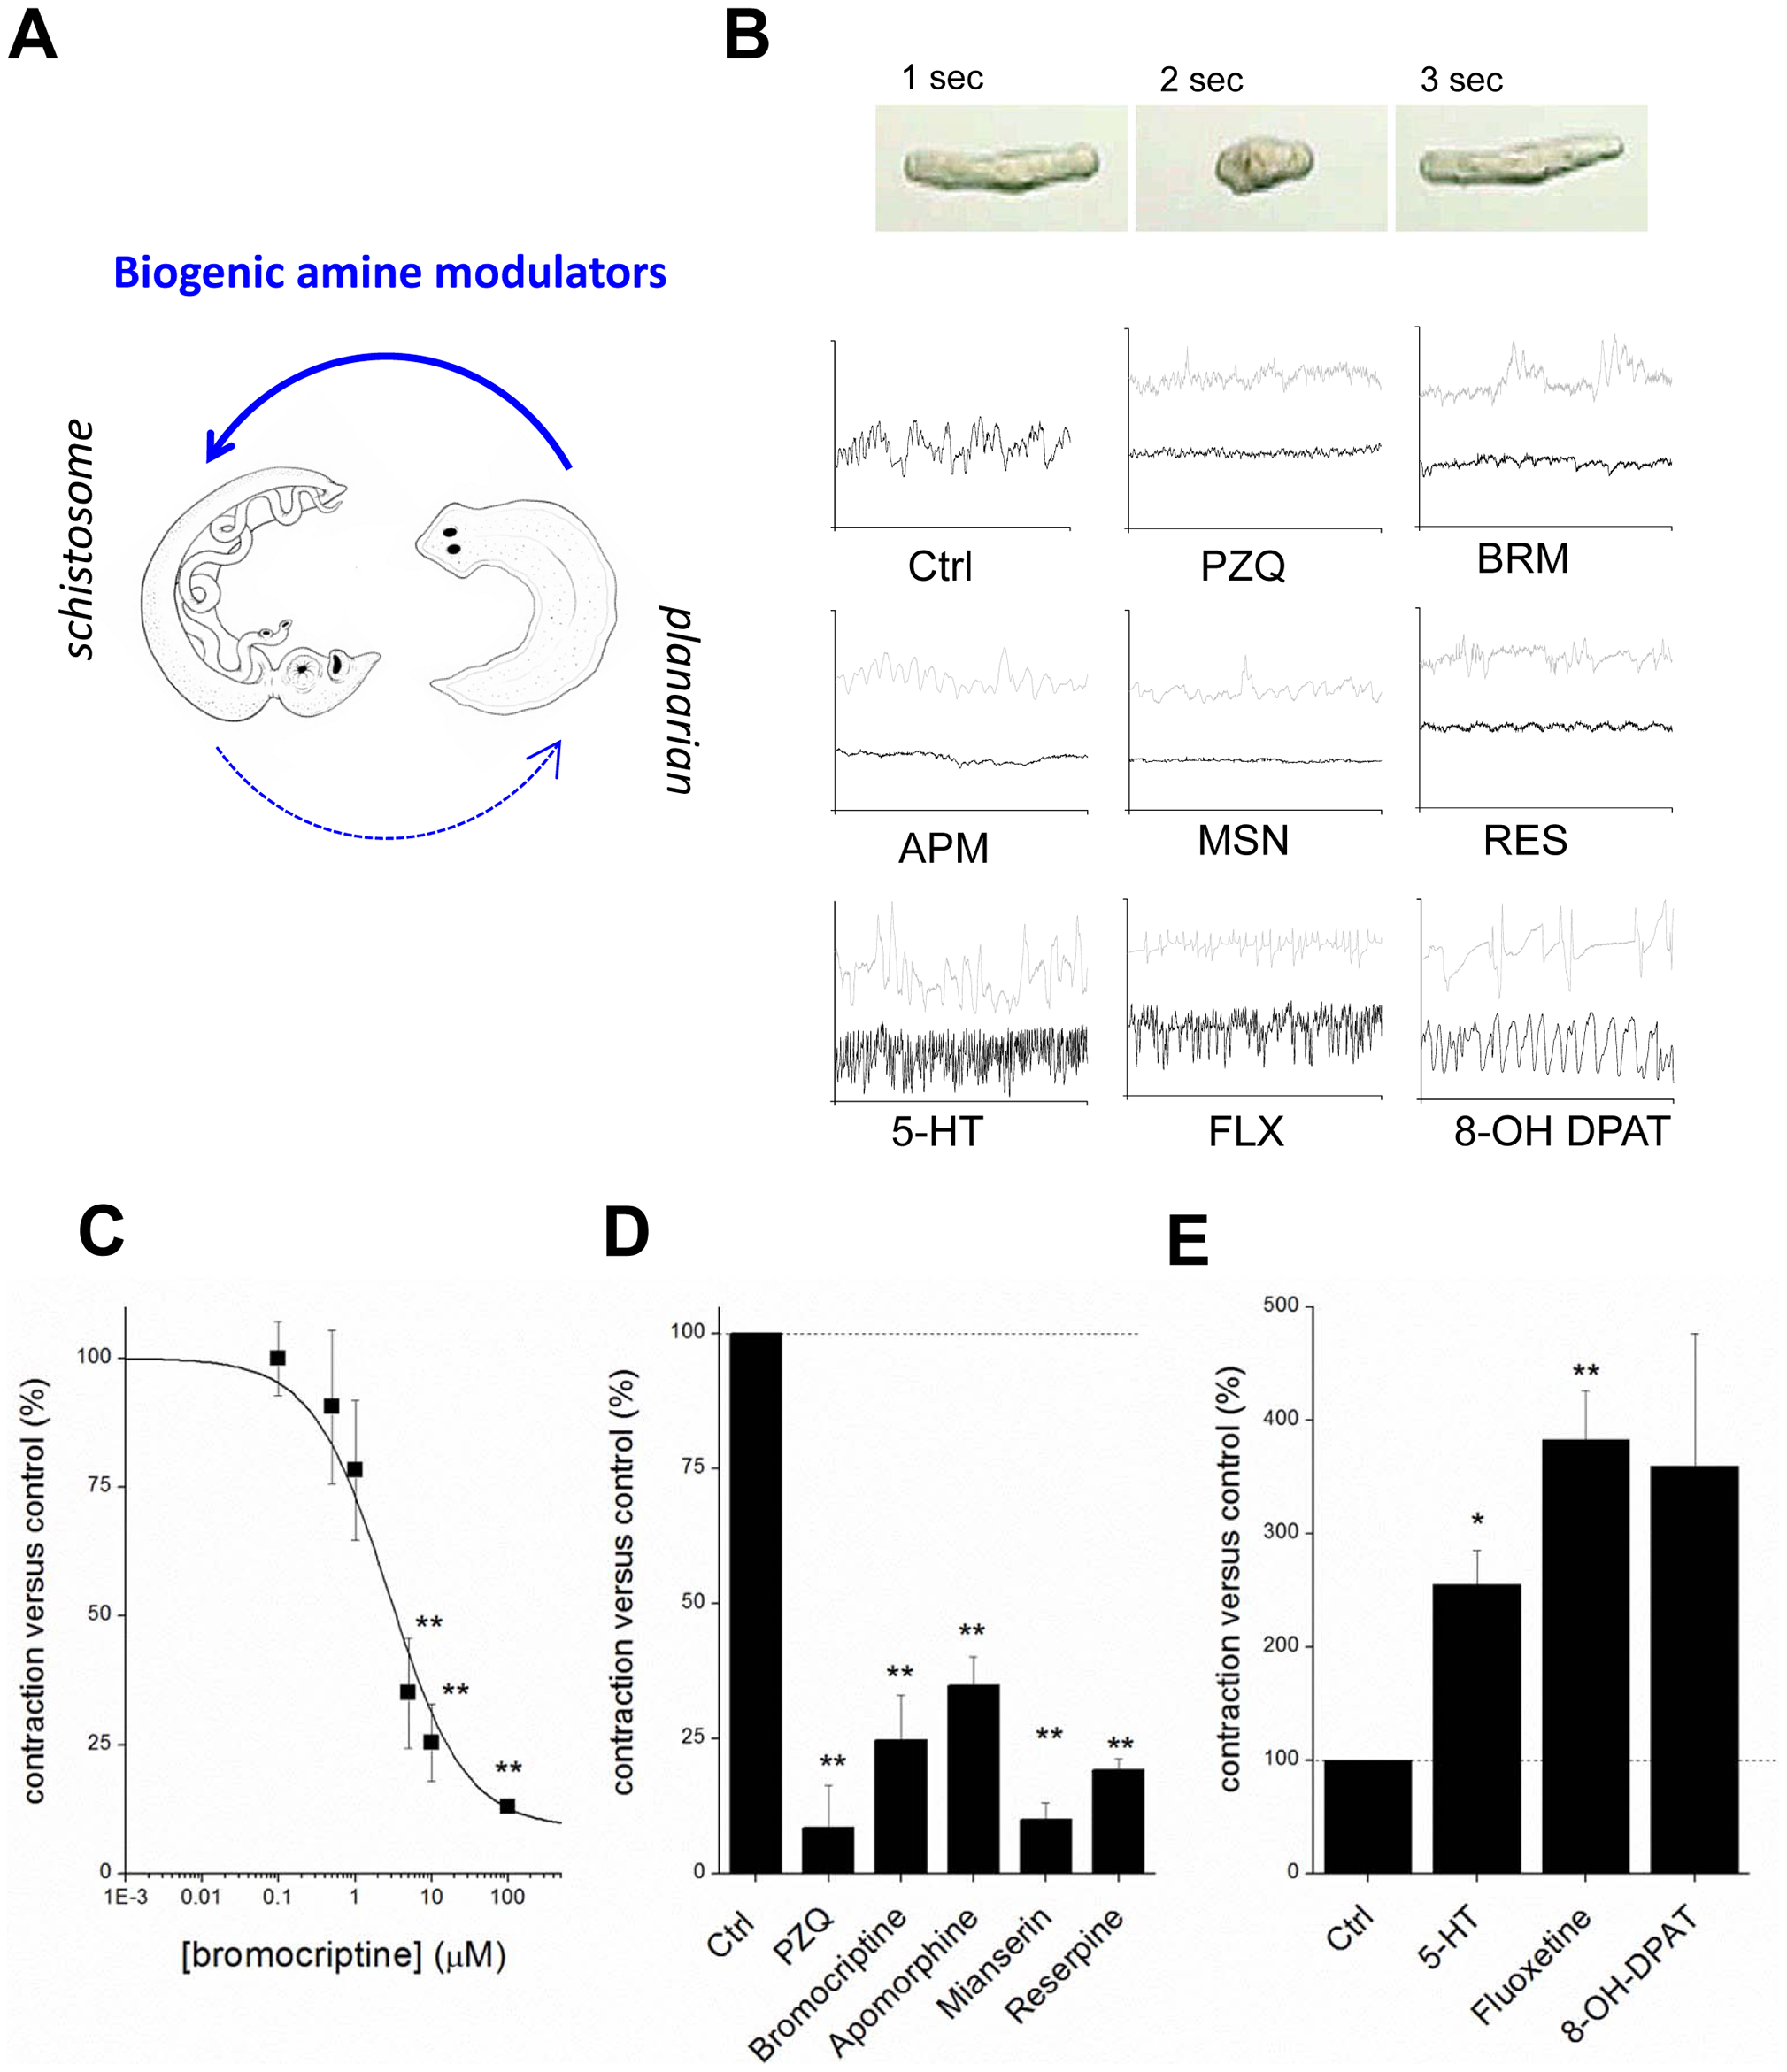 Compounds that miscue planarian polarity regulate schistosomule contractility.